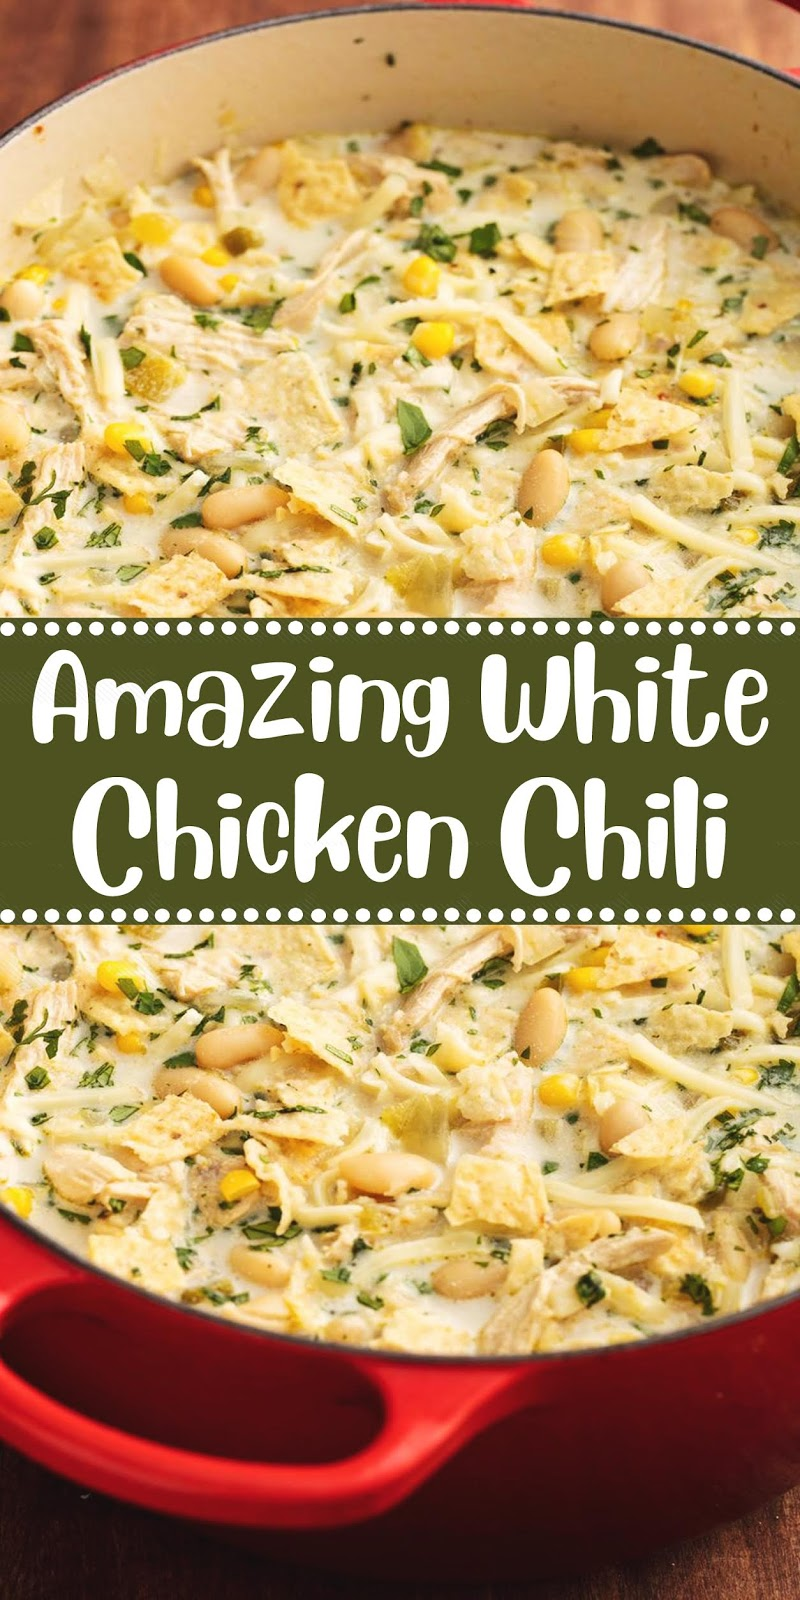 Amazing White Chicken Chili | DAPUR SIMBAH #chilirecipe